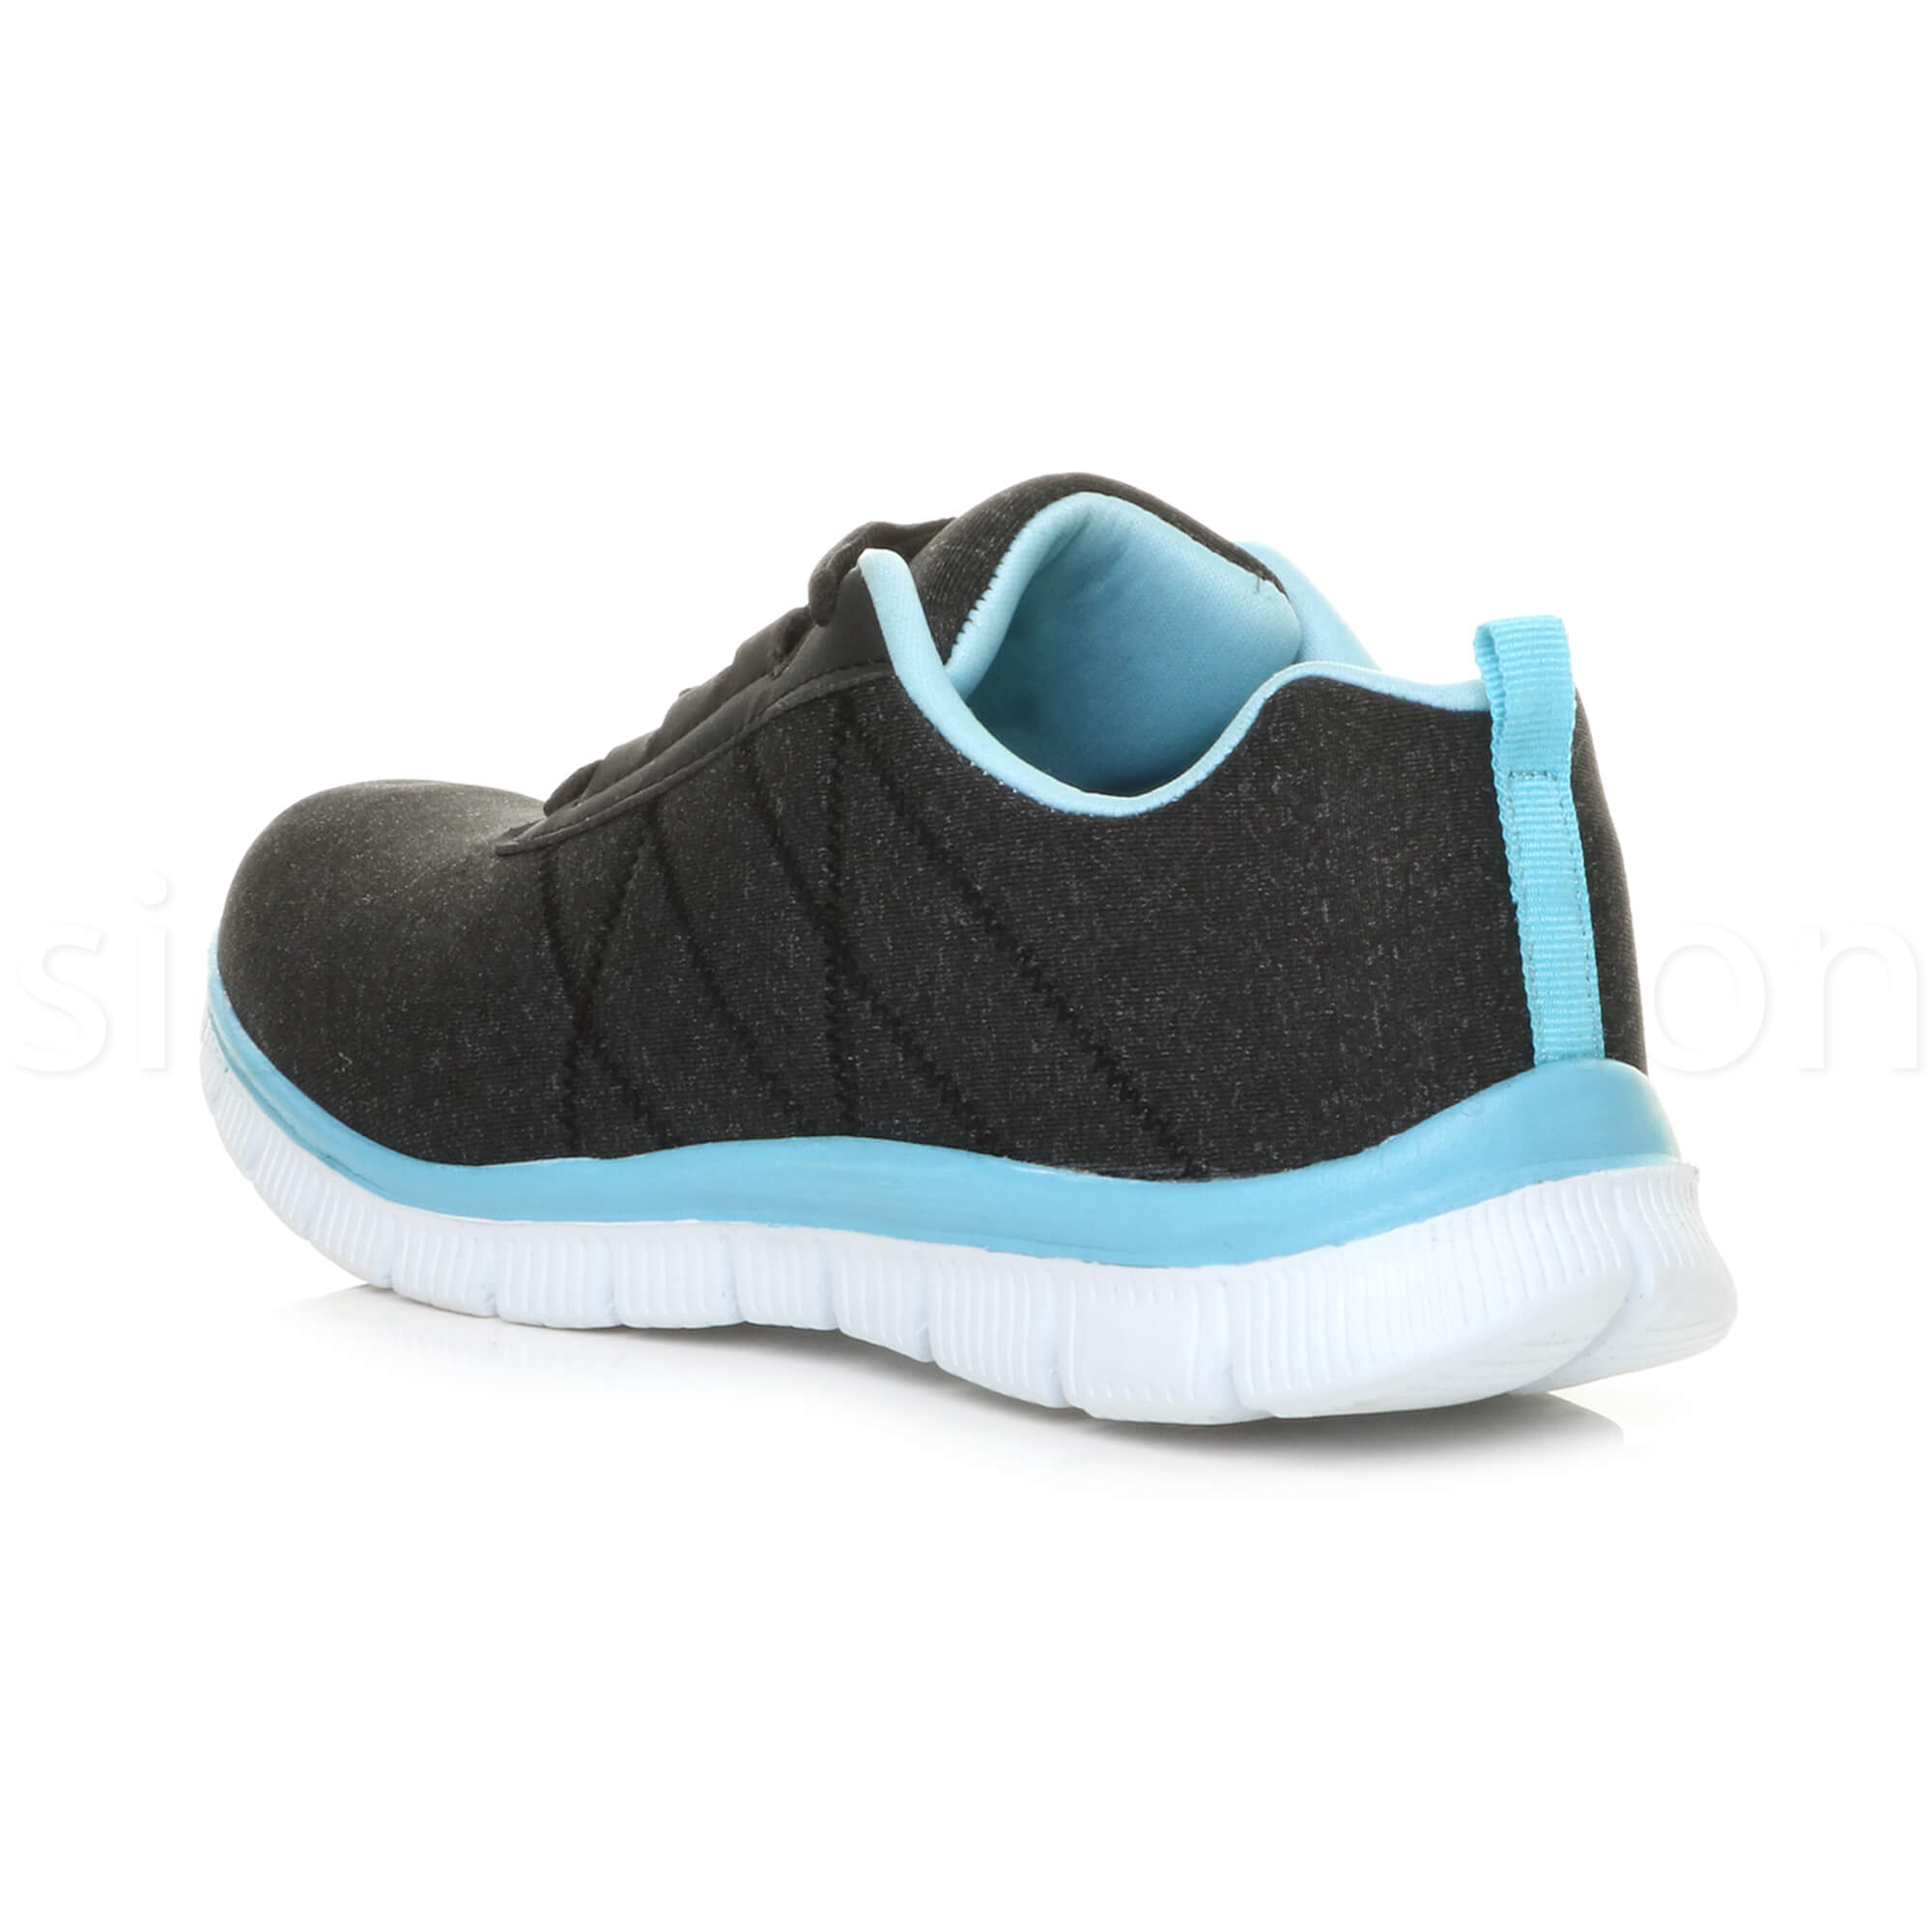 Womens-ladies-comfort-memory-foam-lace-up-trainers-activewear-sneakers-gym-shoes thumbnail 11